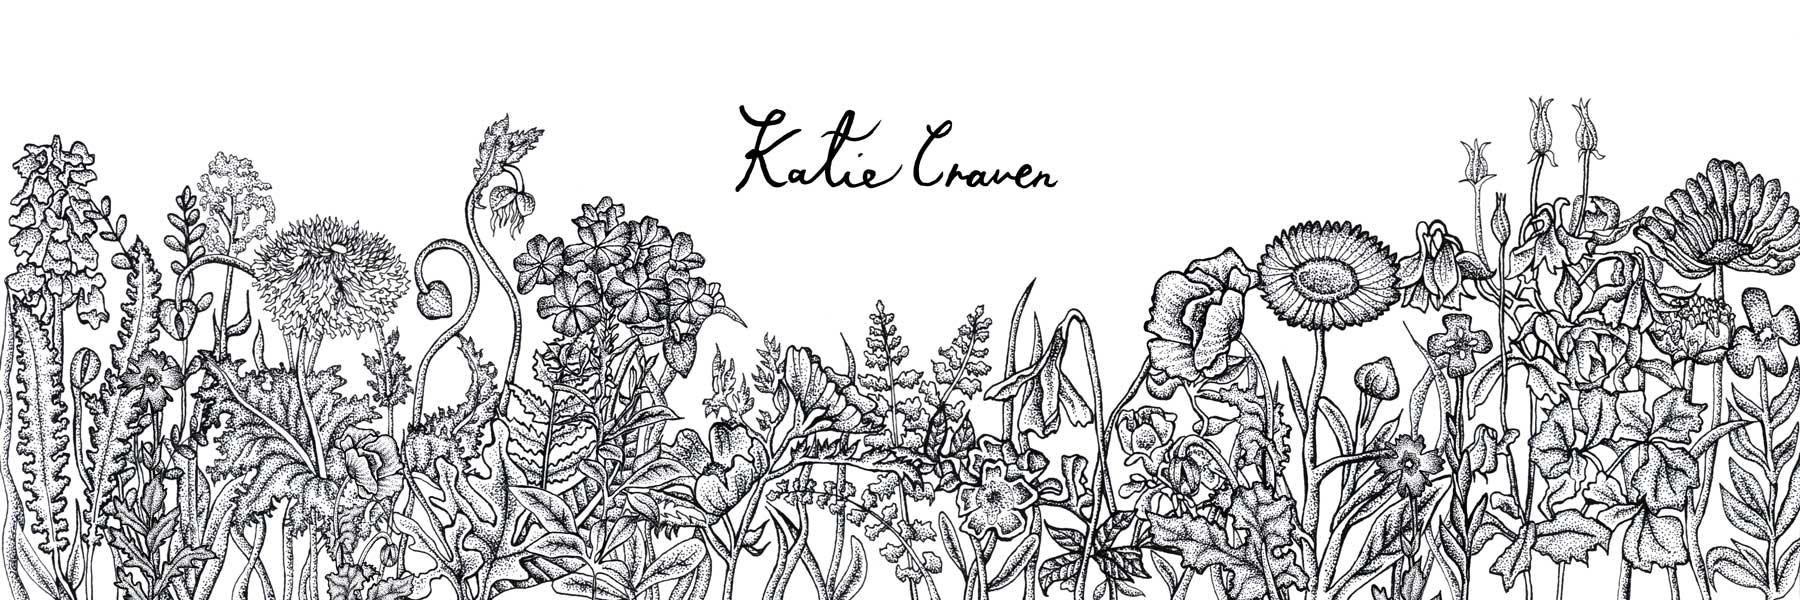 Katie Craven Illustration